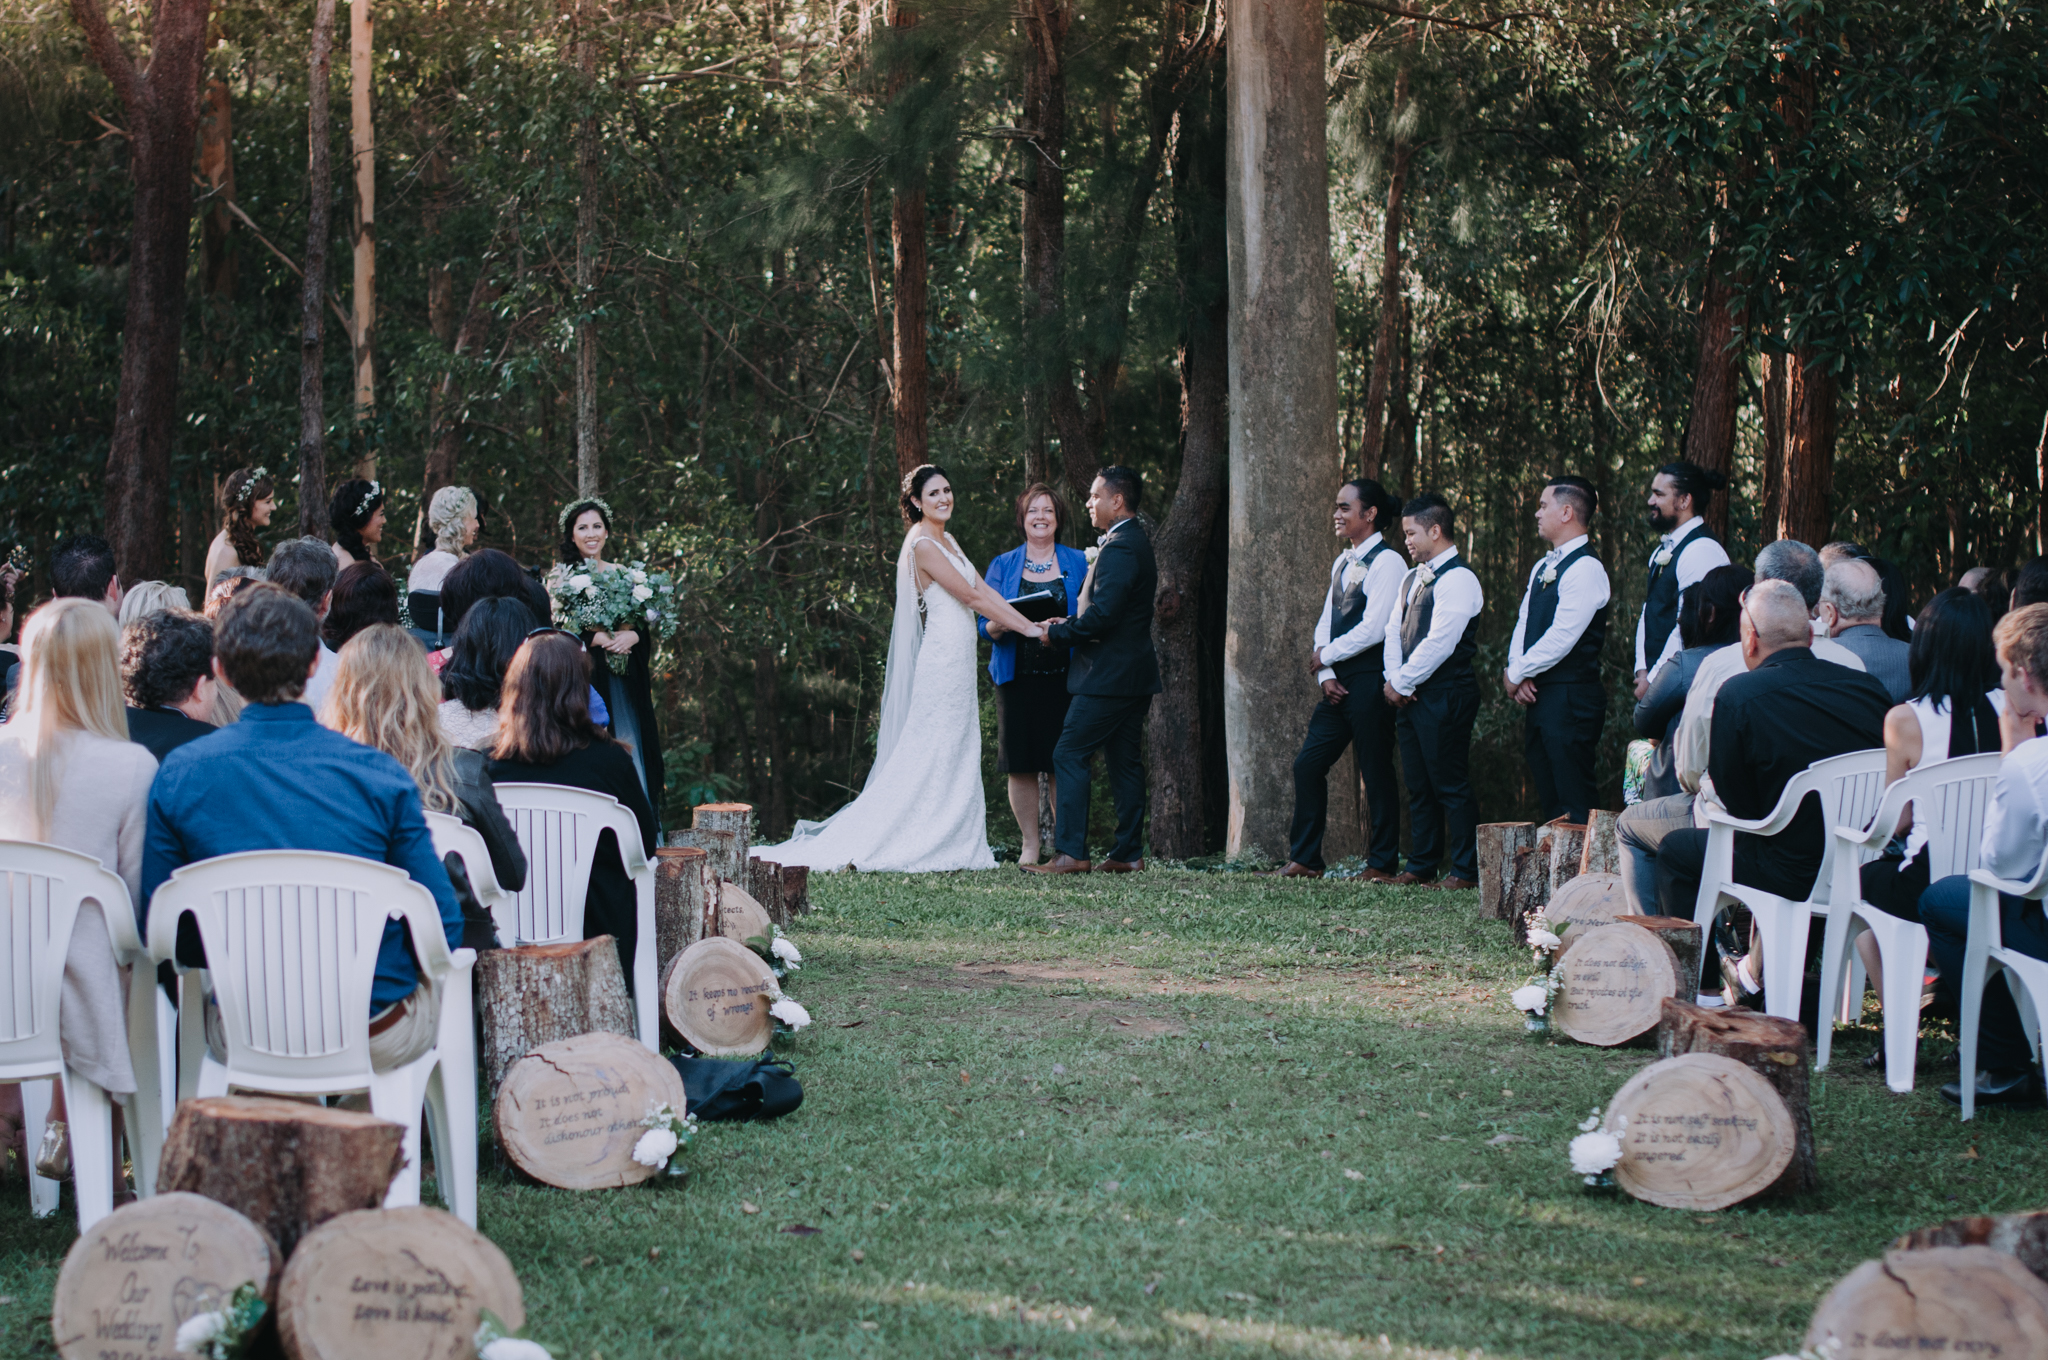 tipi wedding, gold coast, marquee hire, tipi hire, event hire, gold coast weddings, wedding ceremony, forest